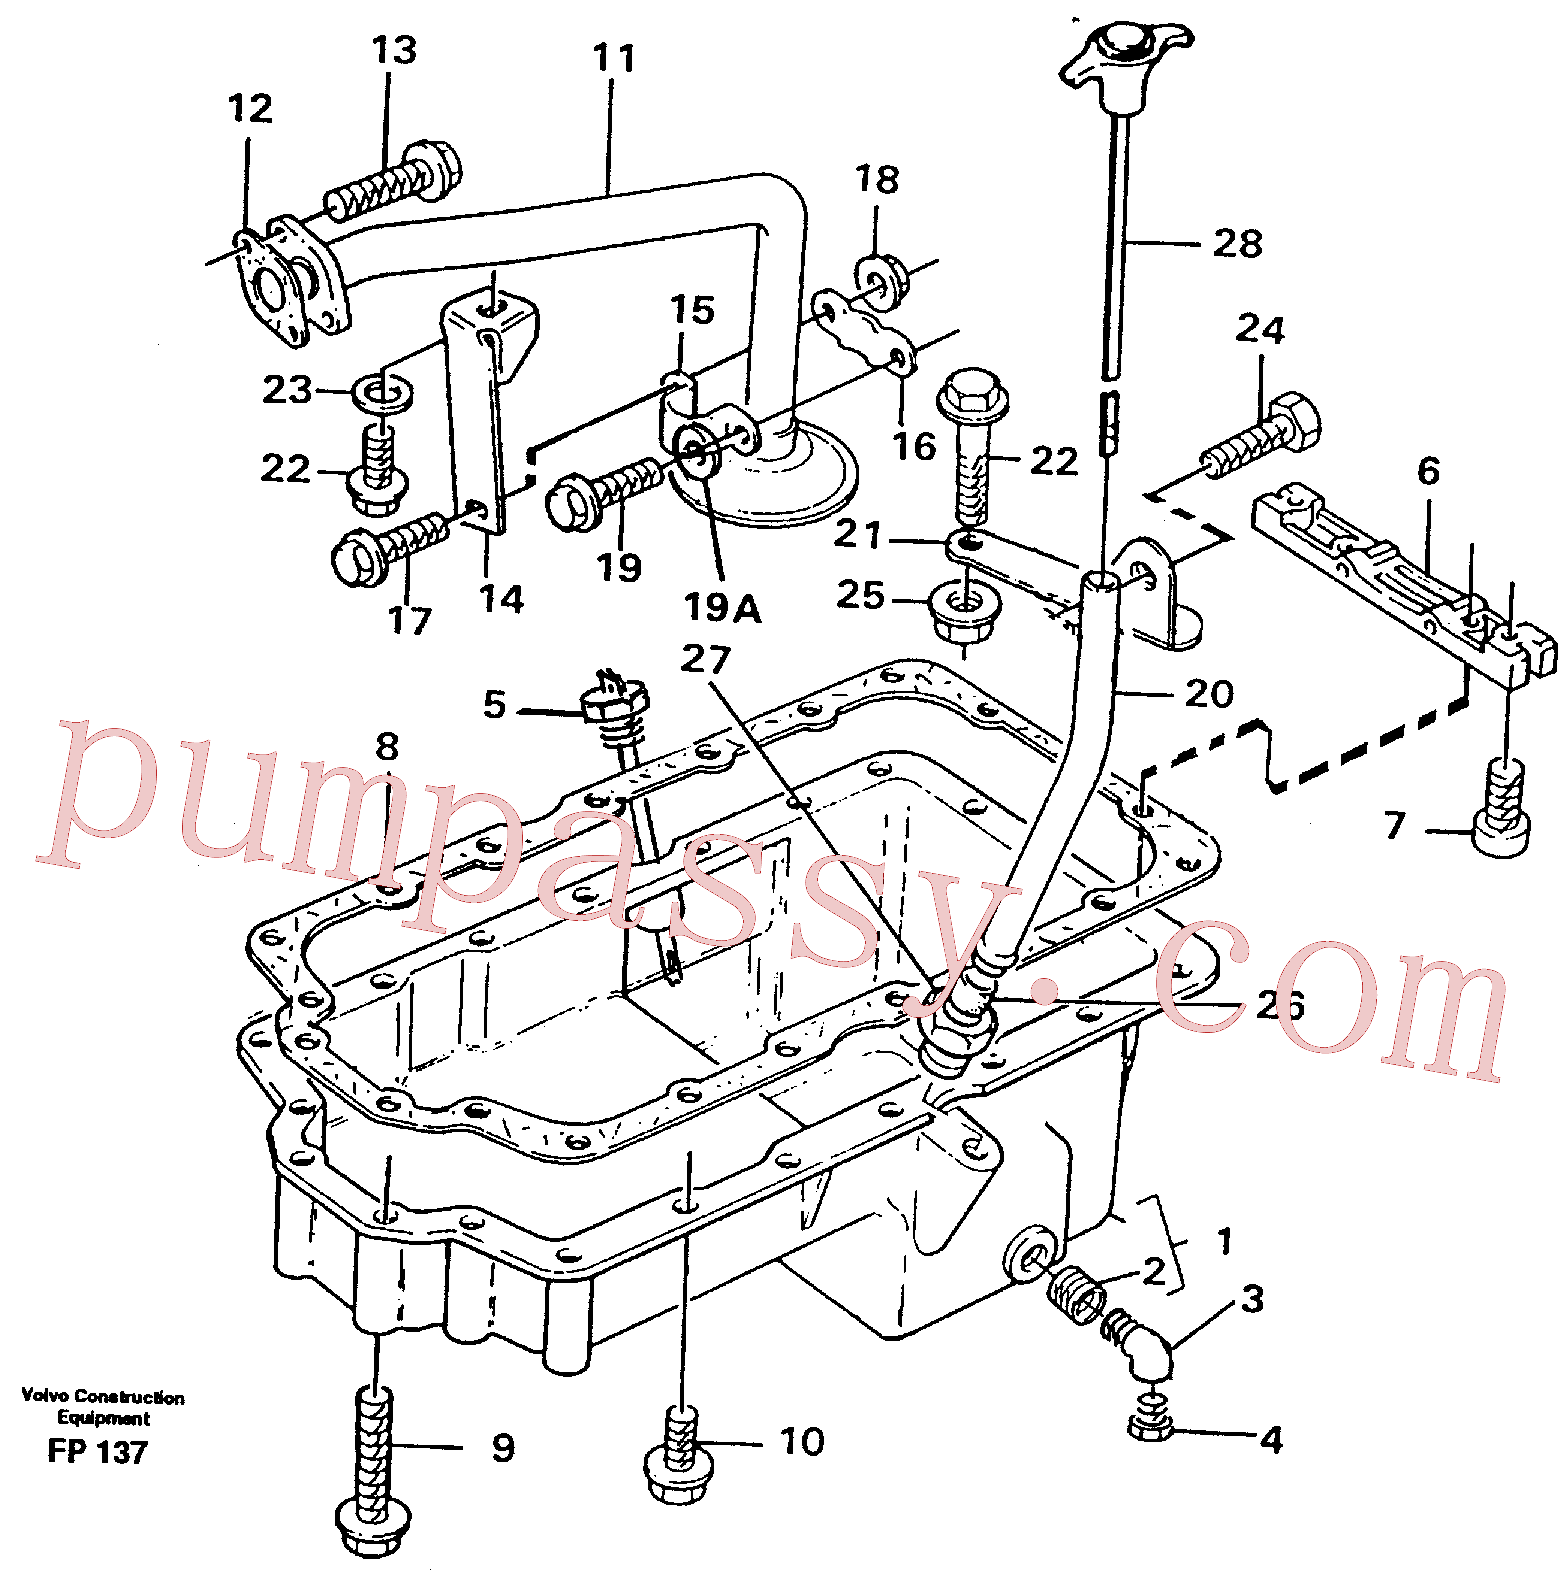 VOE11997968 for Volvo Oil sump(FP137 assembly)